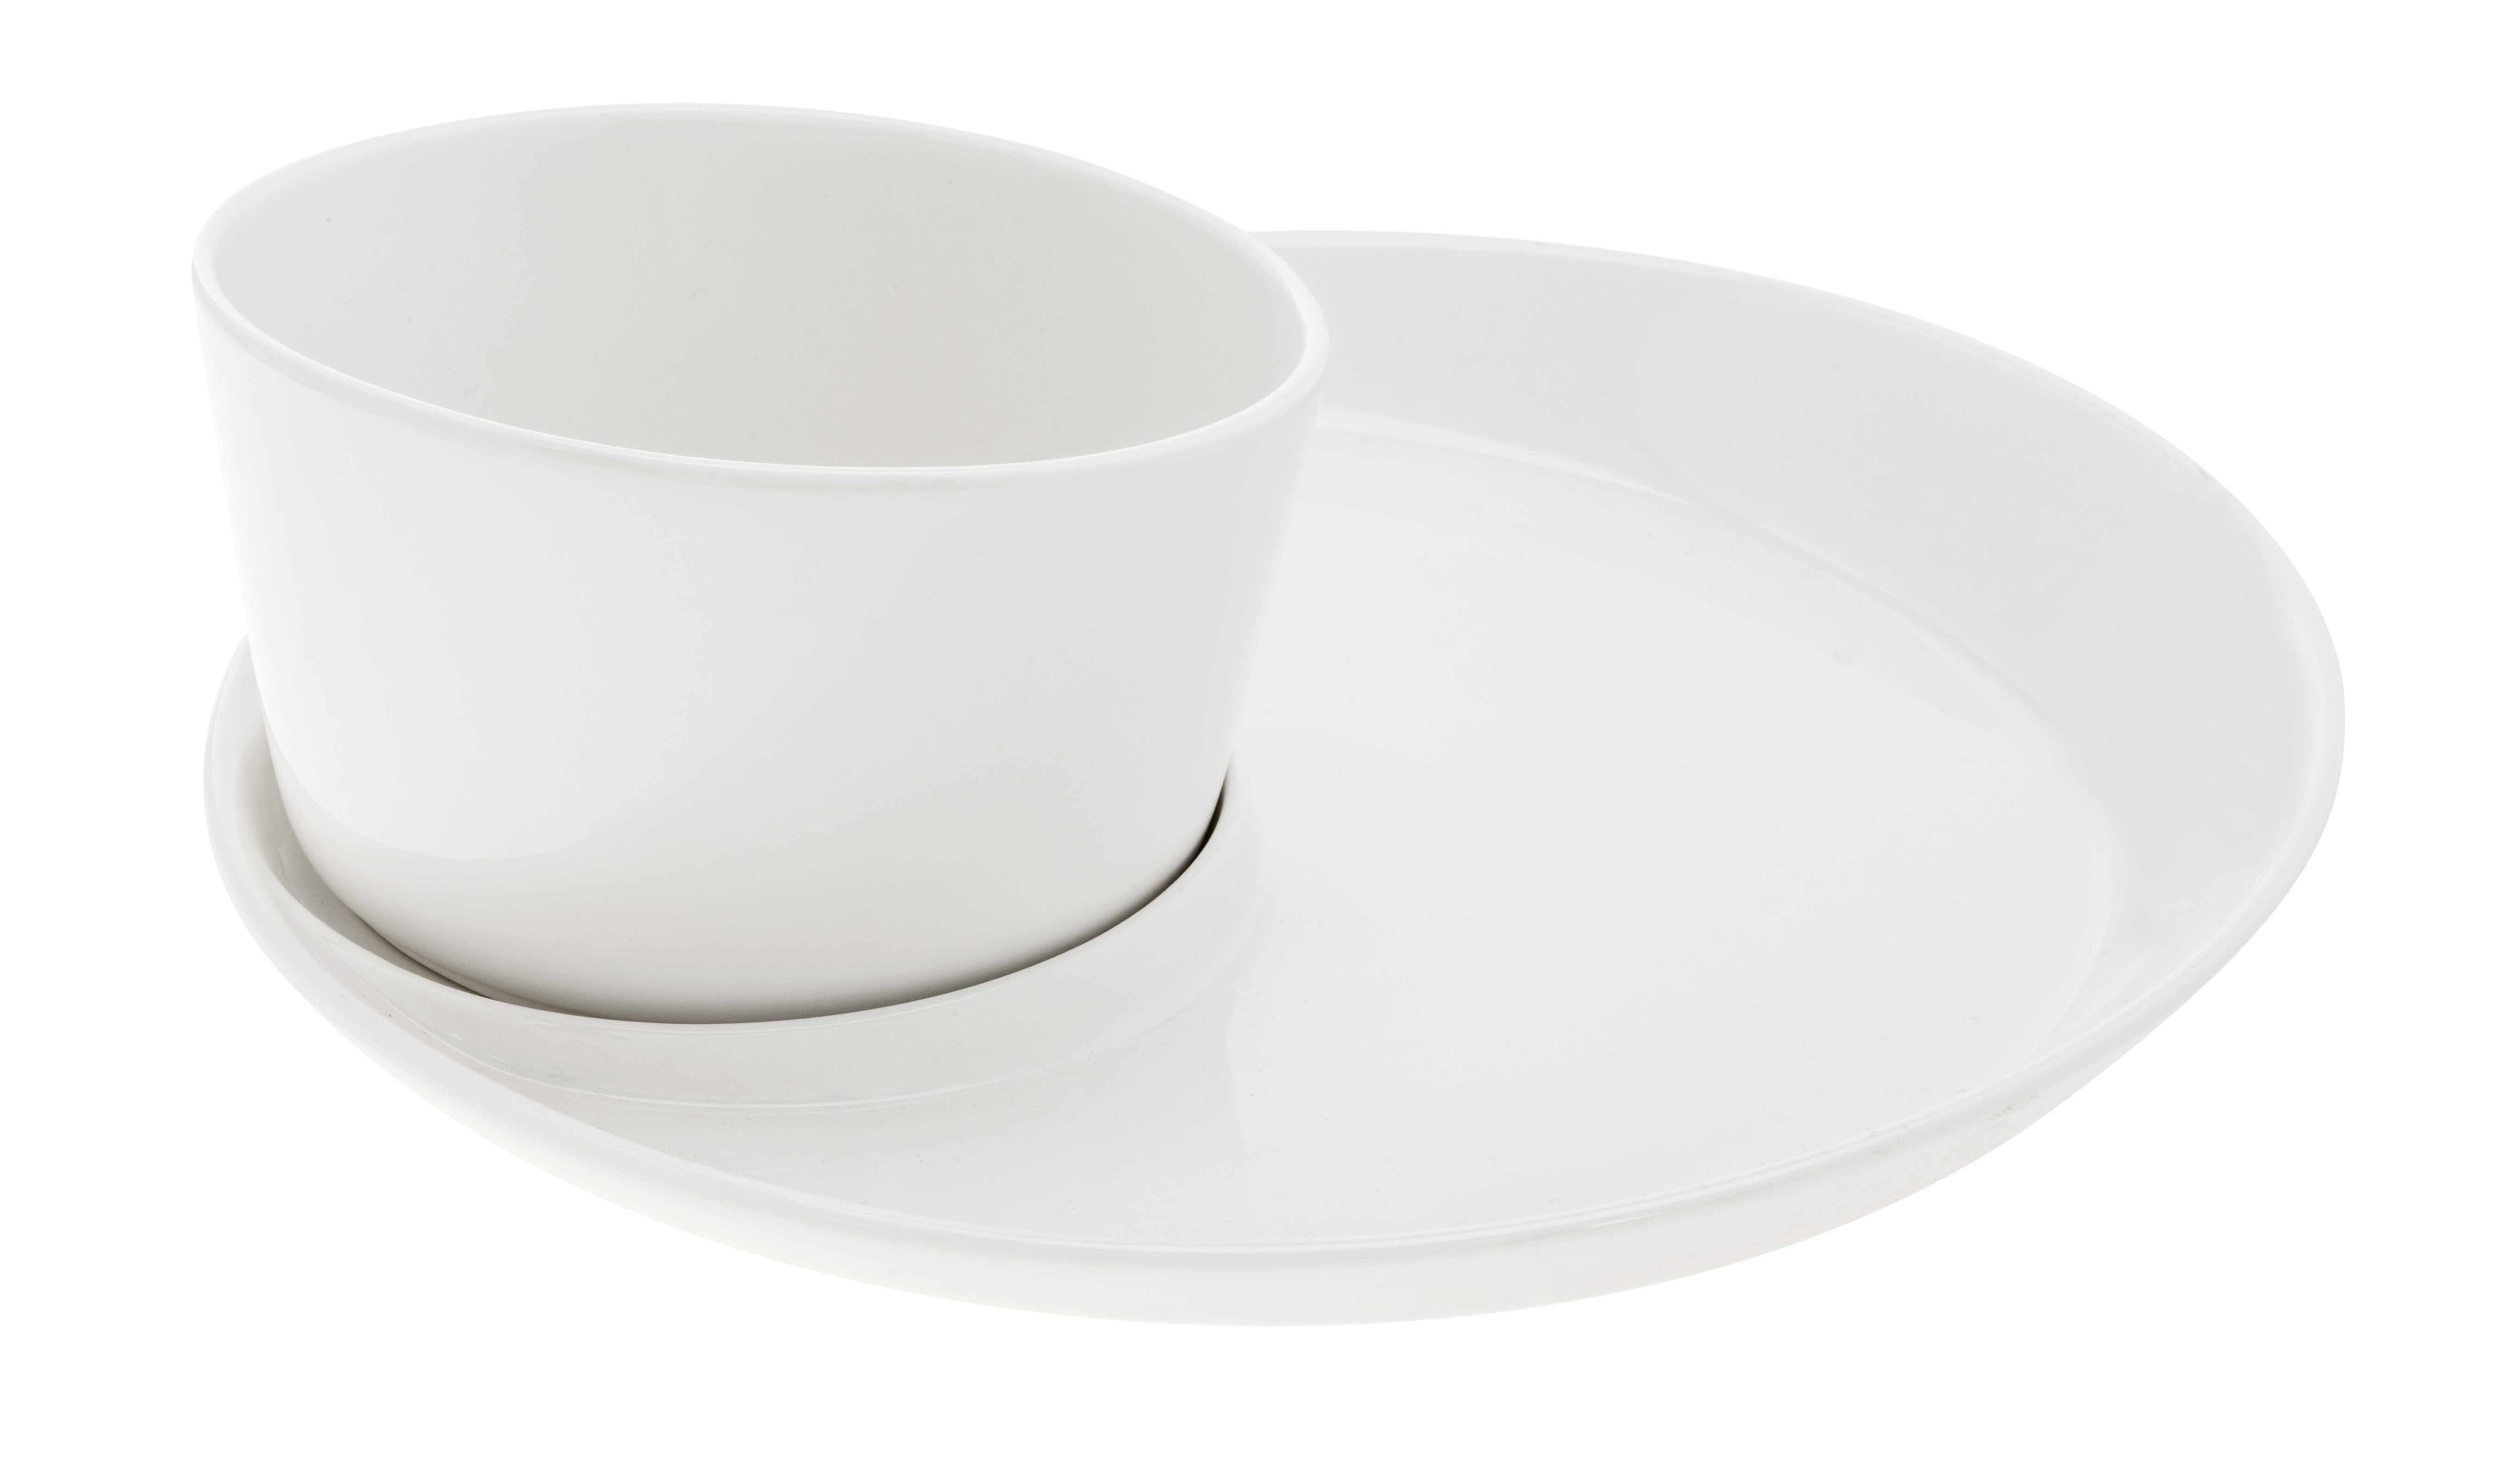 Hull Soup And Sandwich Bowl Plate 4 Sets 206630586  sc 1 st  Plate & Soup And Sandwich Plate Sets - Best Plate 2018